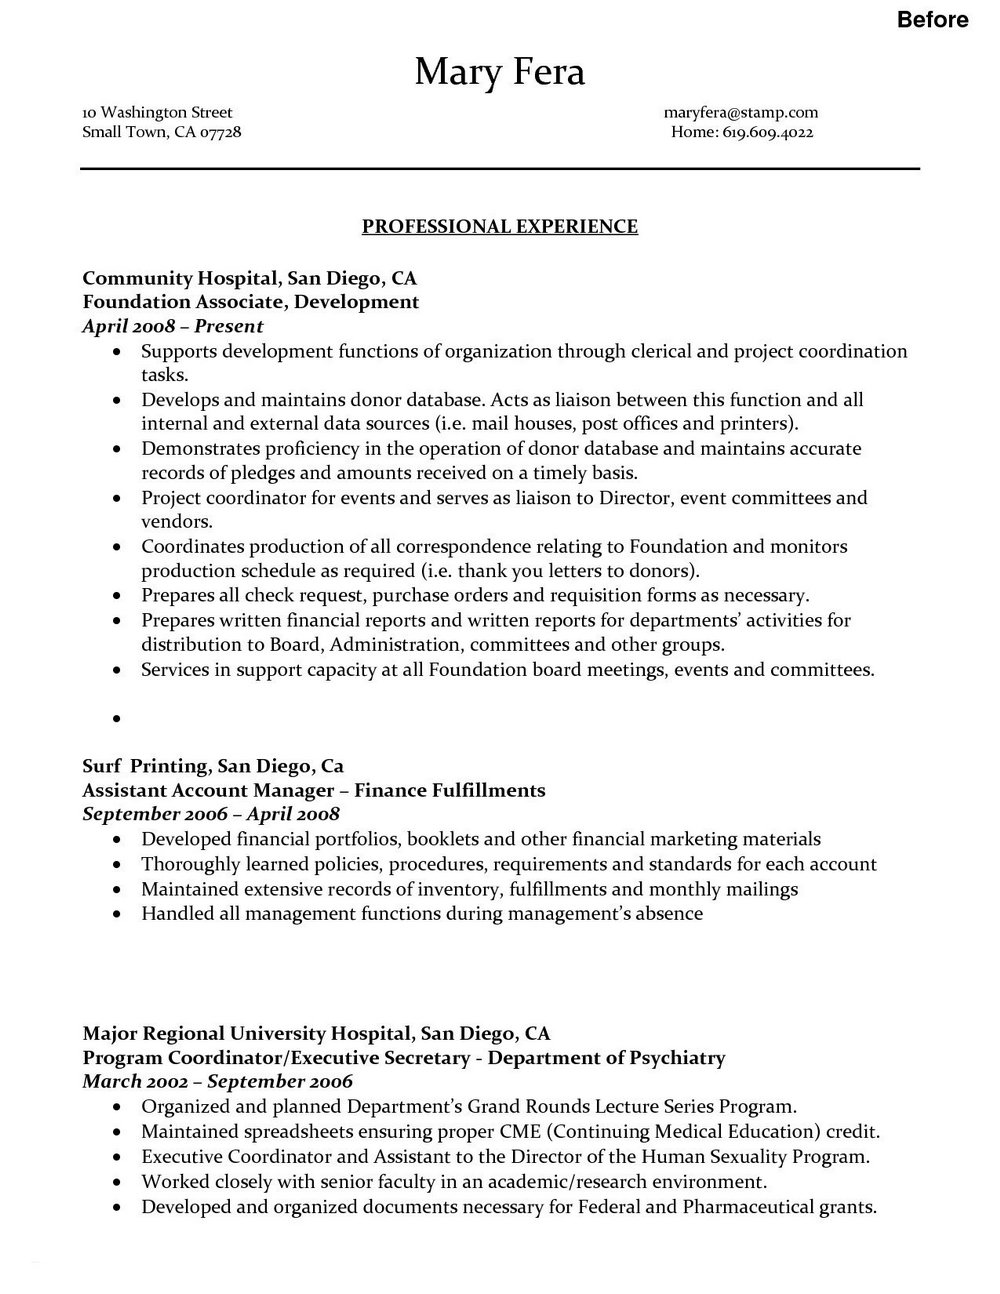 Competitive Edge Resume Service San Diego Ca